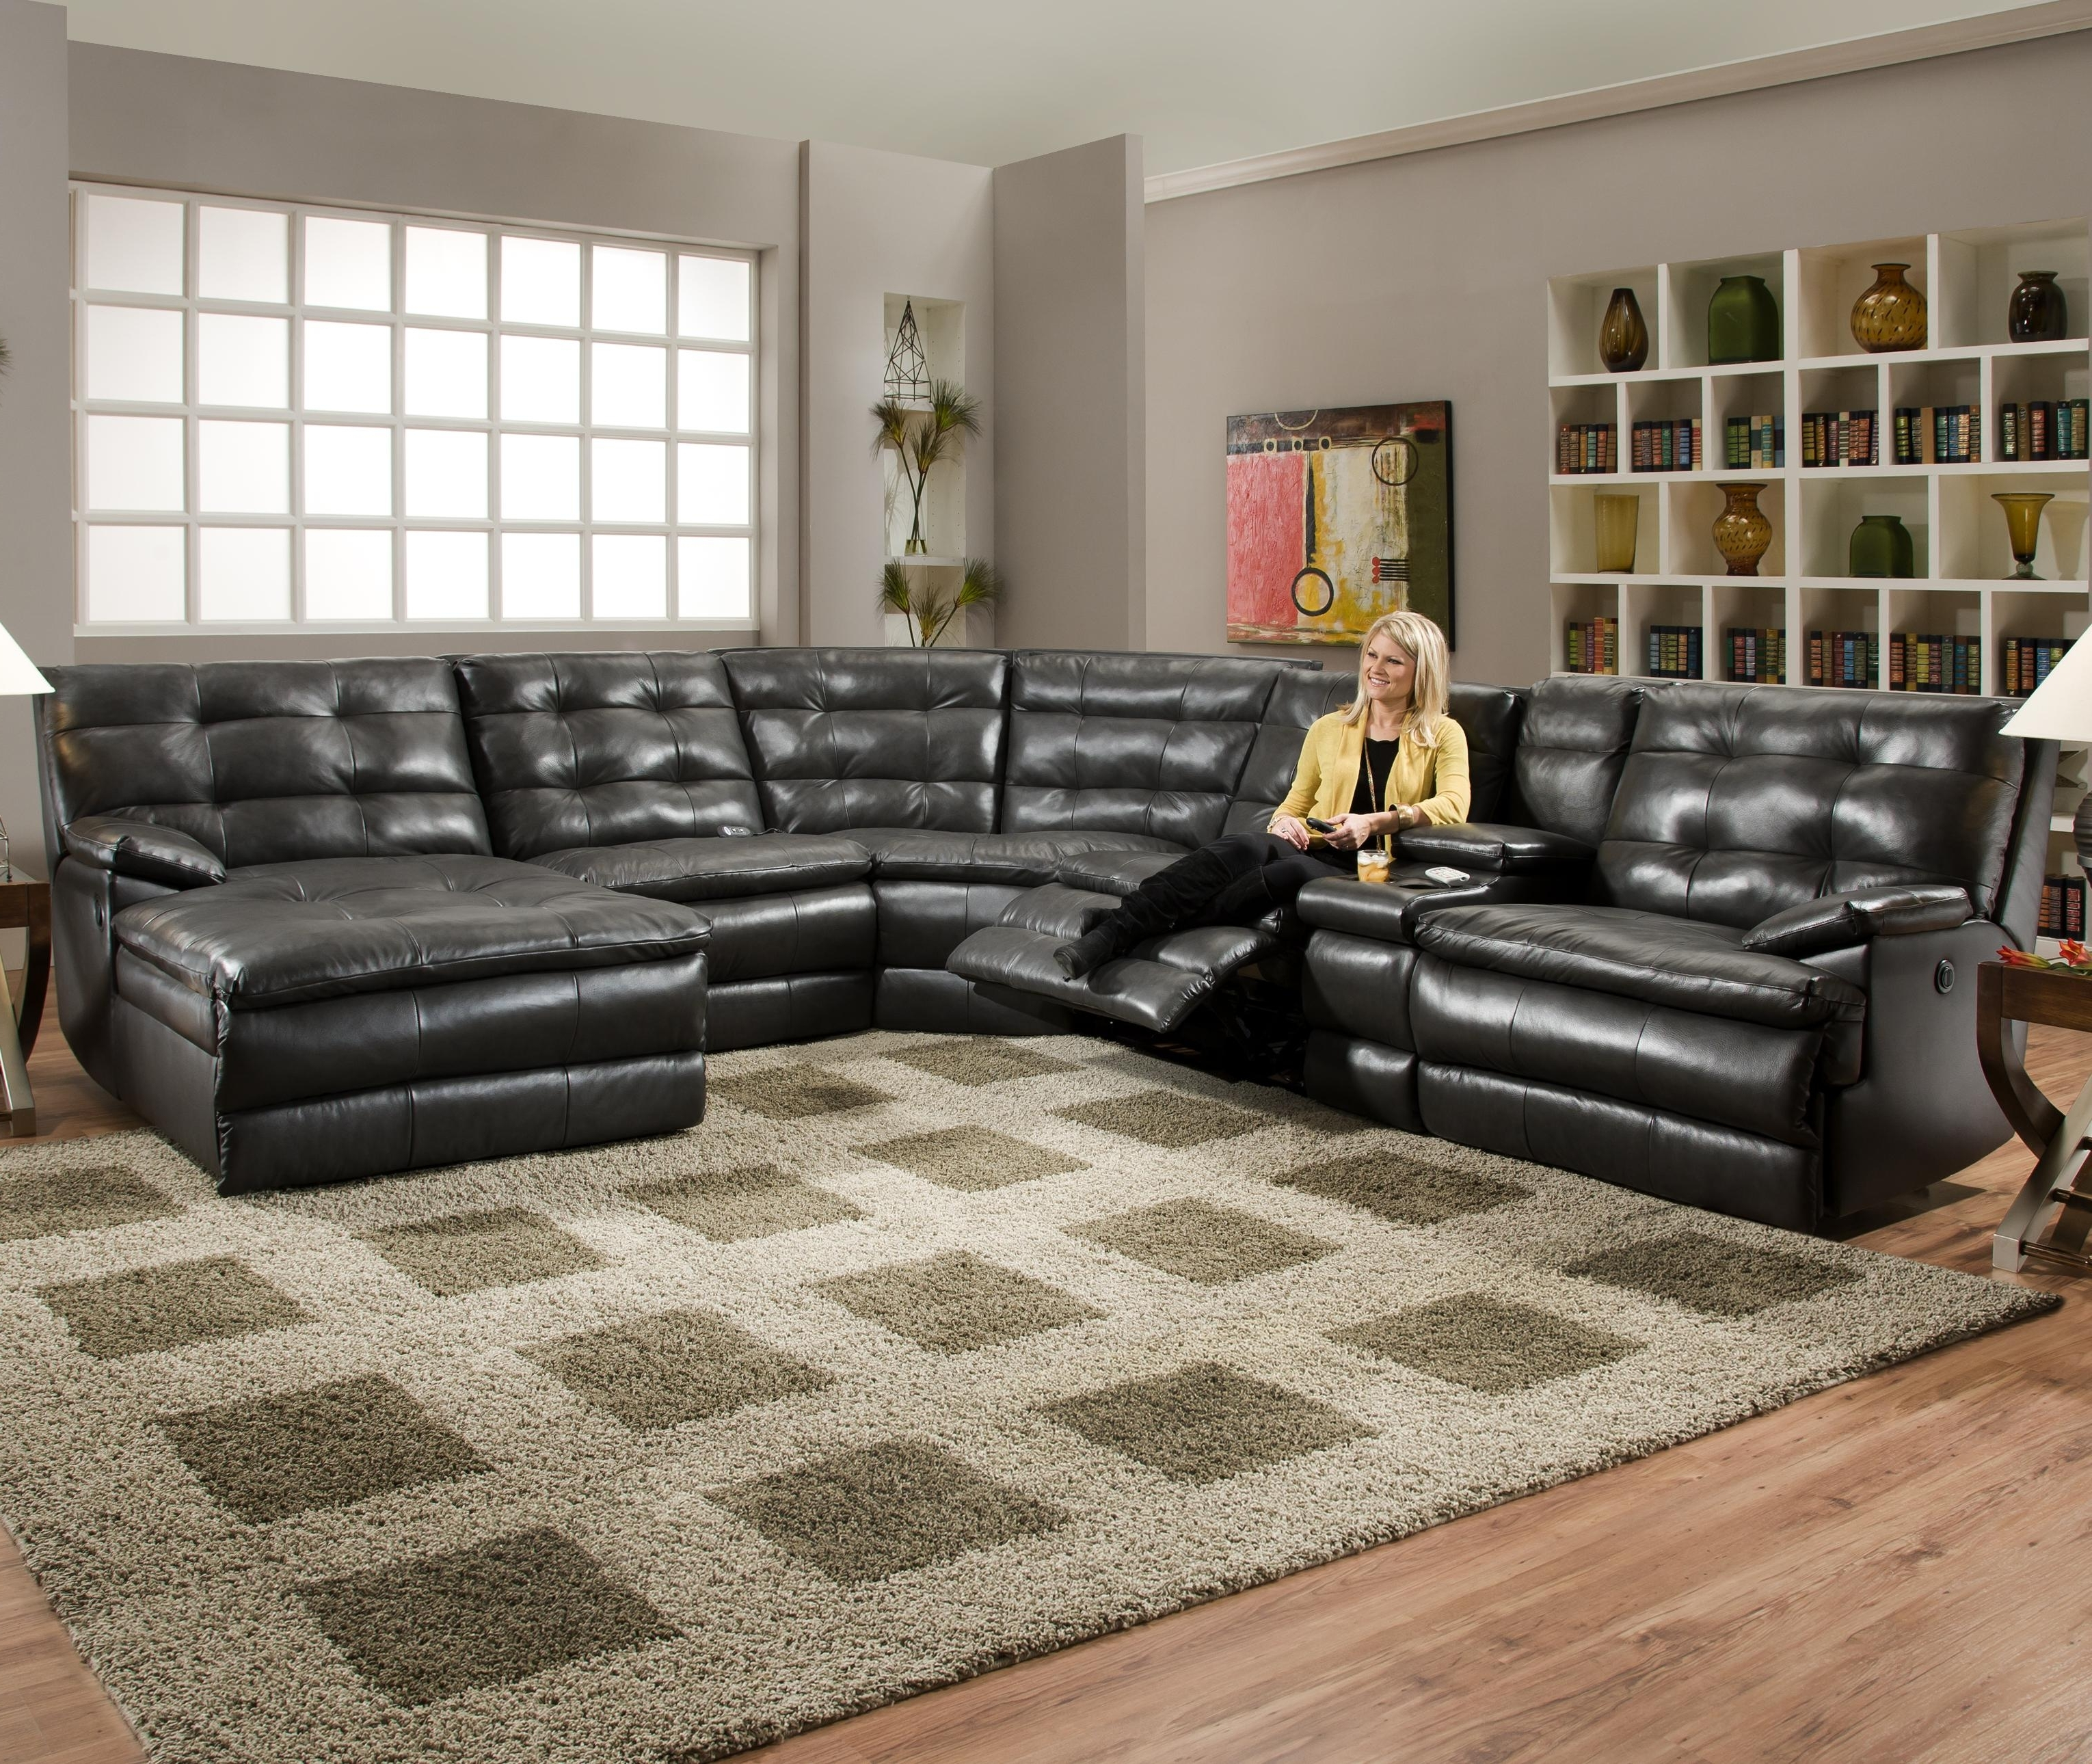 Trendy Chaise Recliners Throughout Sectional Sofa Design: Recliner Sectional Sofas Microfiber (View 10 of 15)